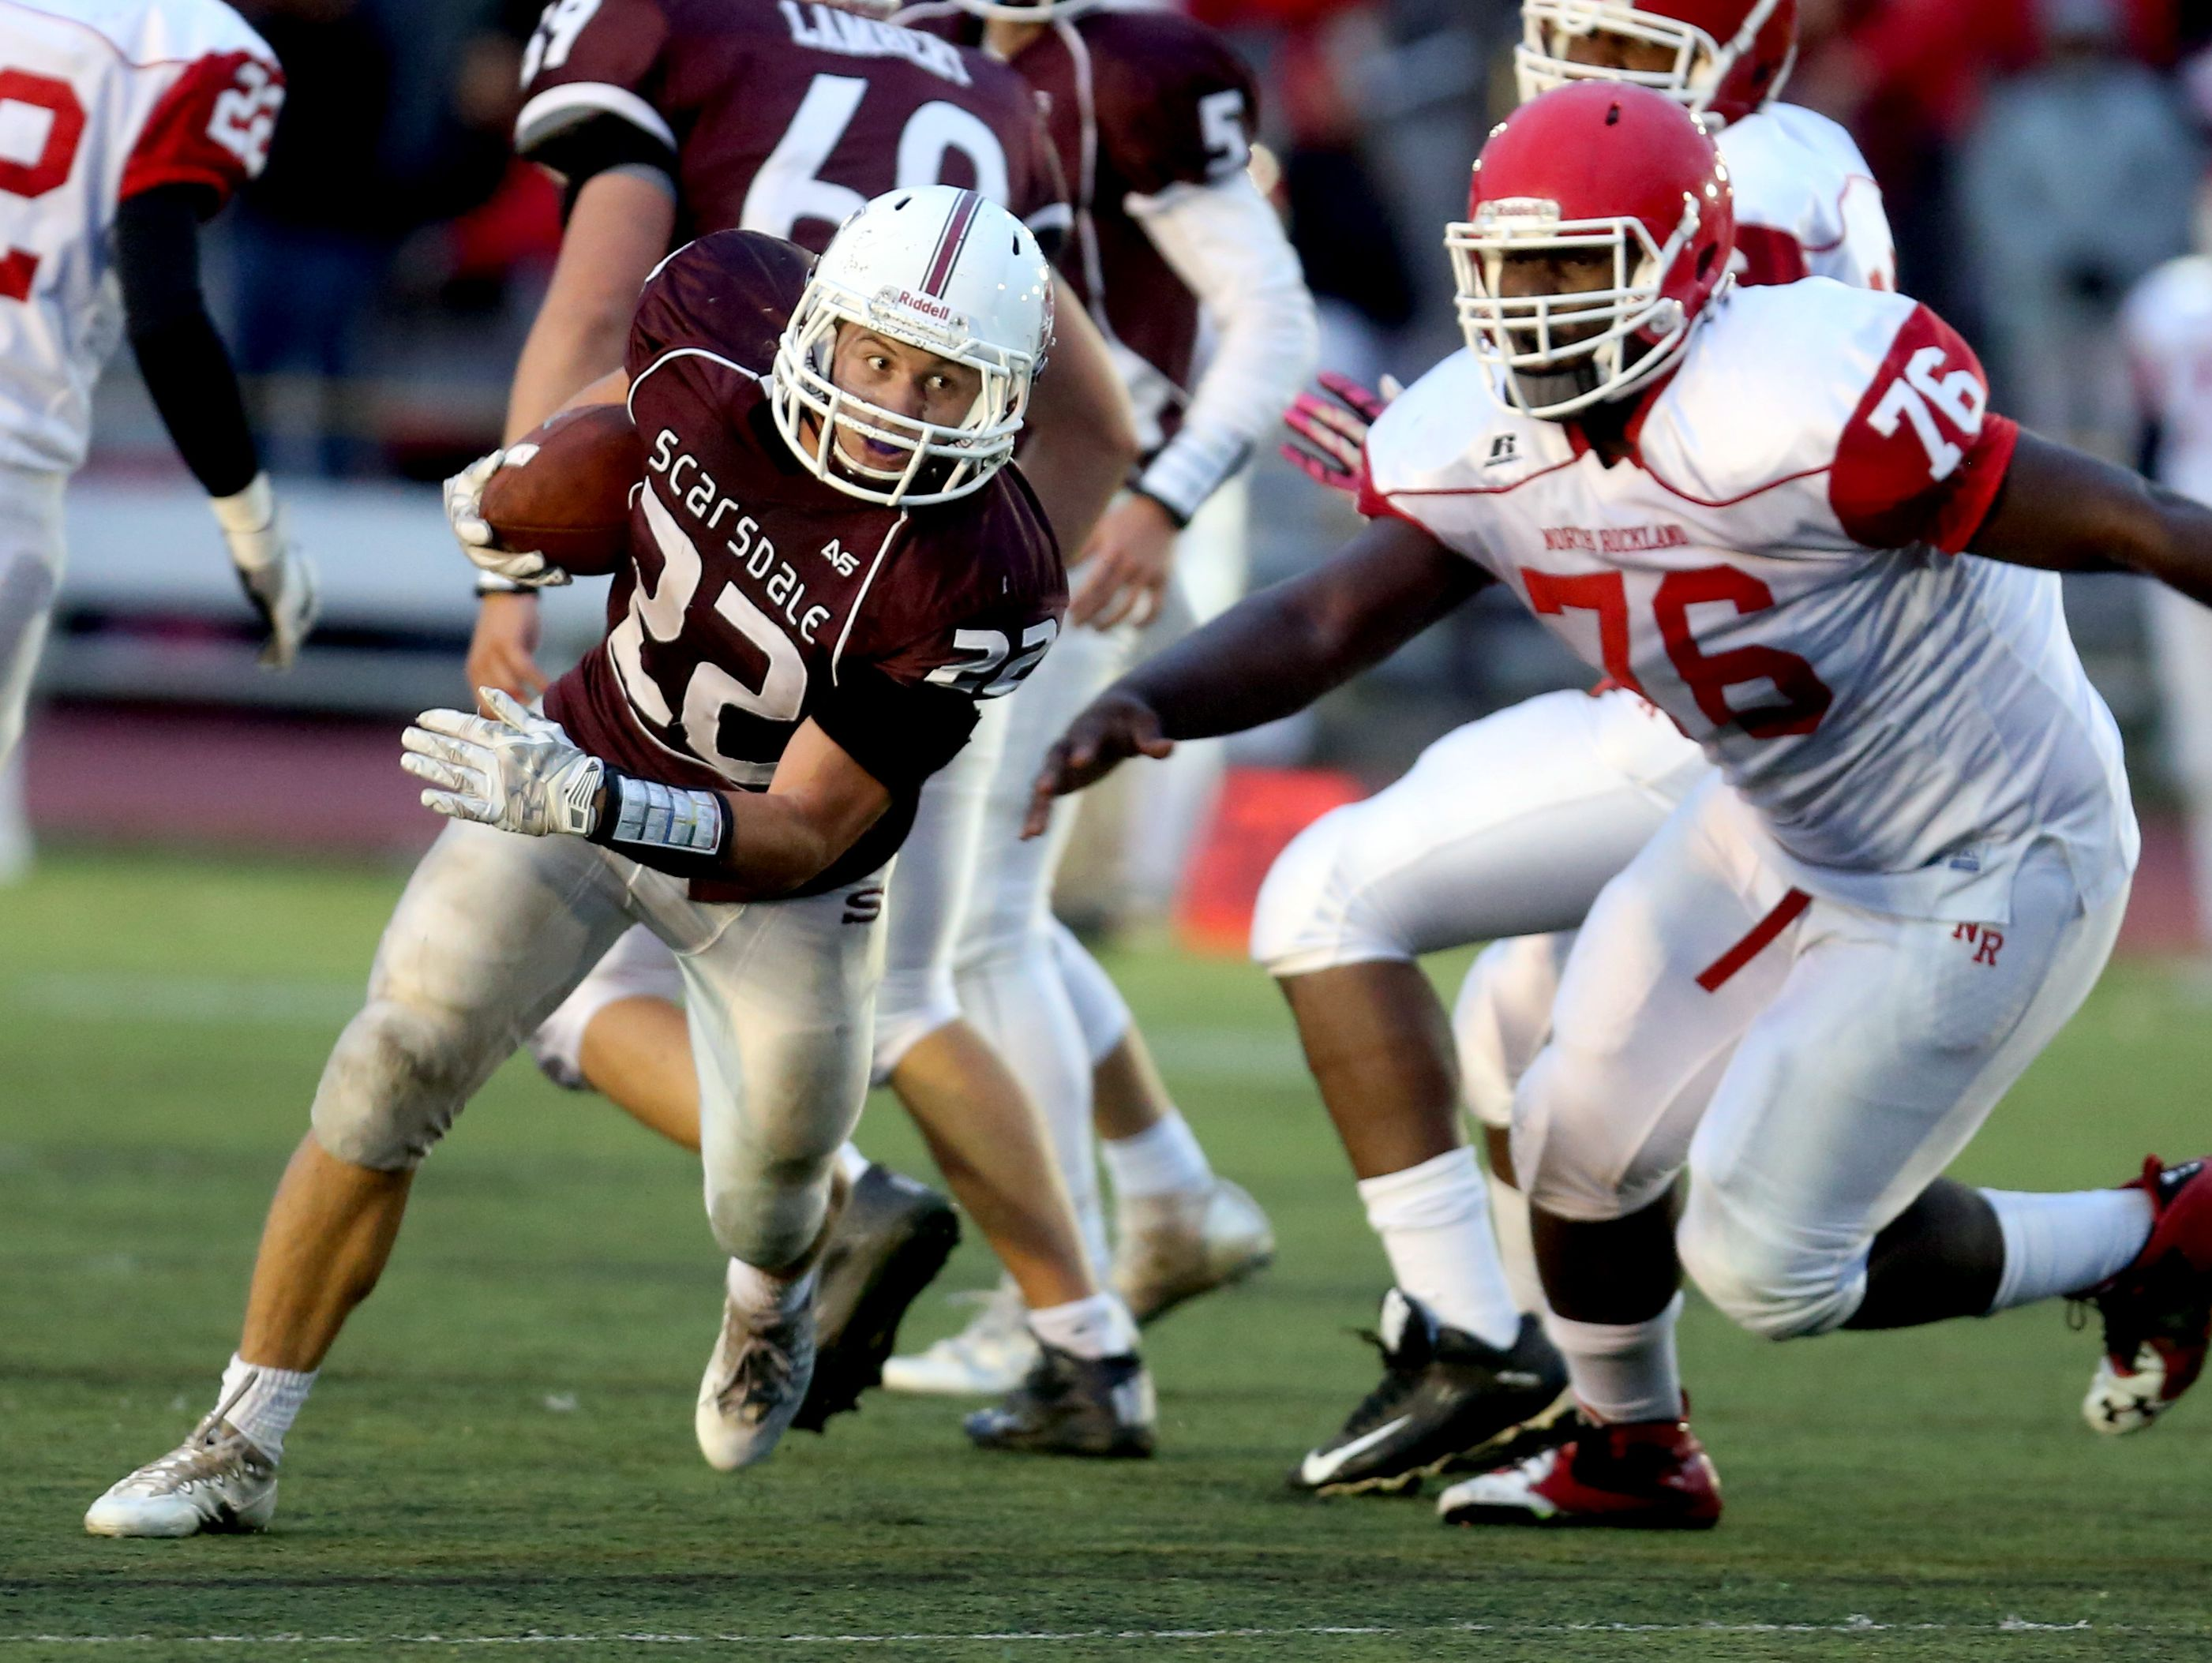 Scarsdale running back Nick Leone evades North Rockland's Hervens Mulatre during a varsity football game at Scarsdale High School Sept. 30, 3016. Scarsdale defeated North Rockland 31-7.